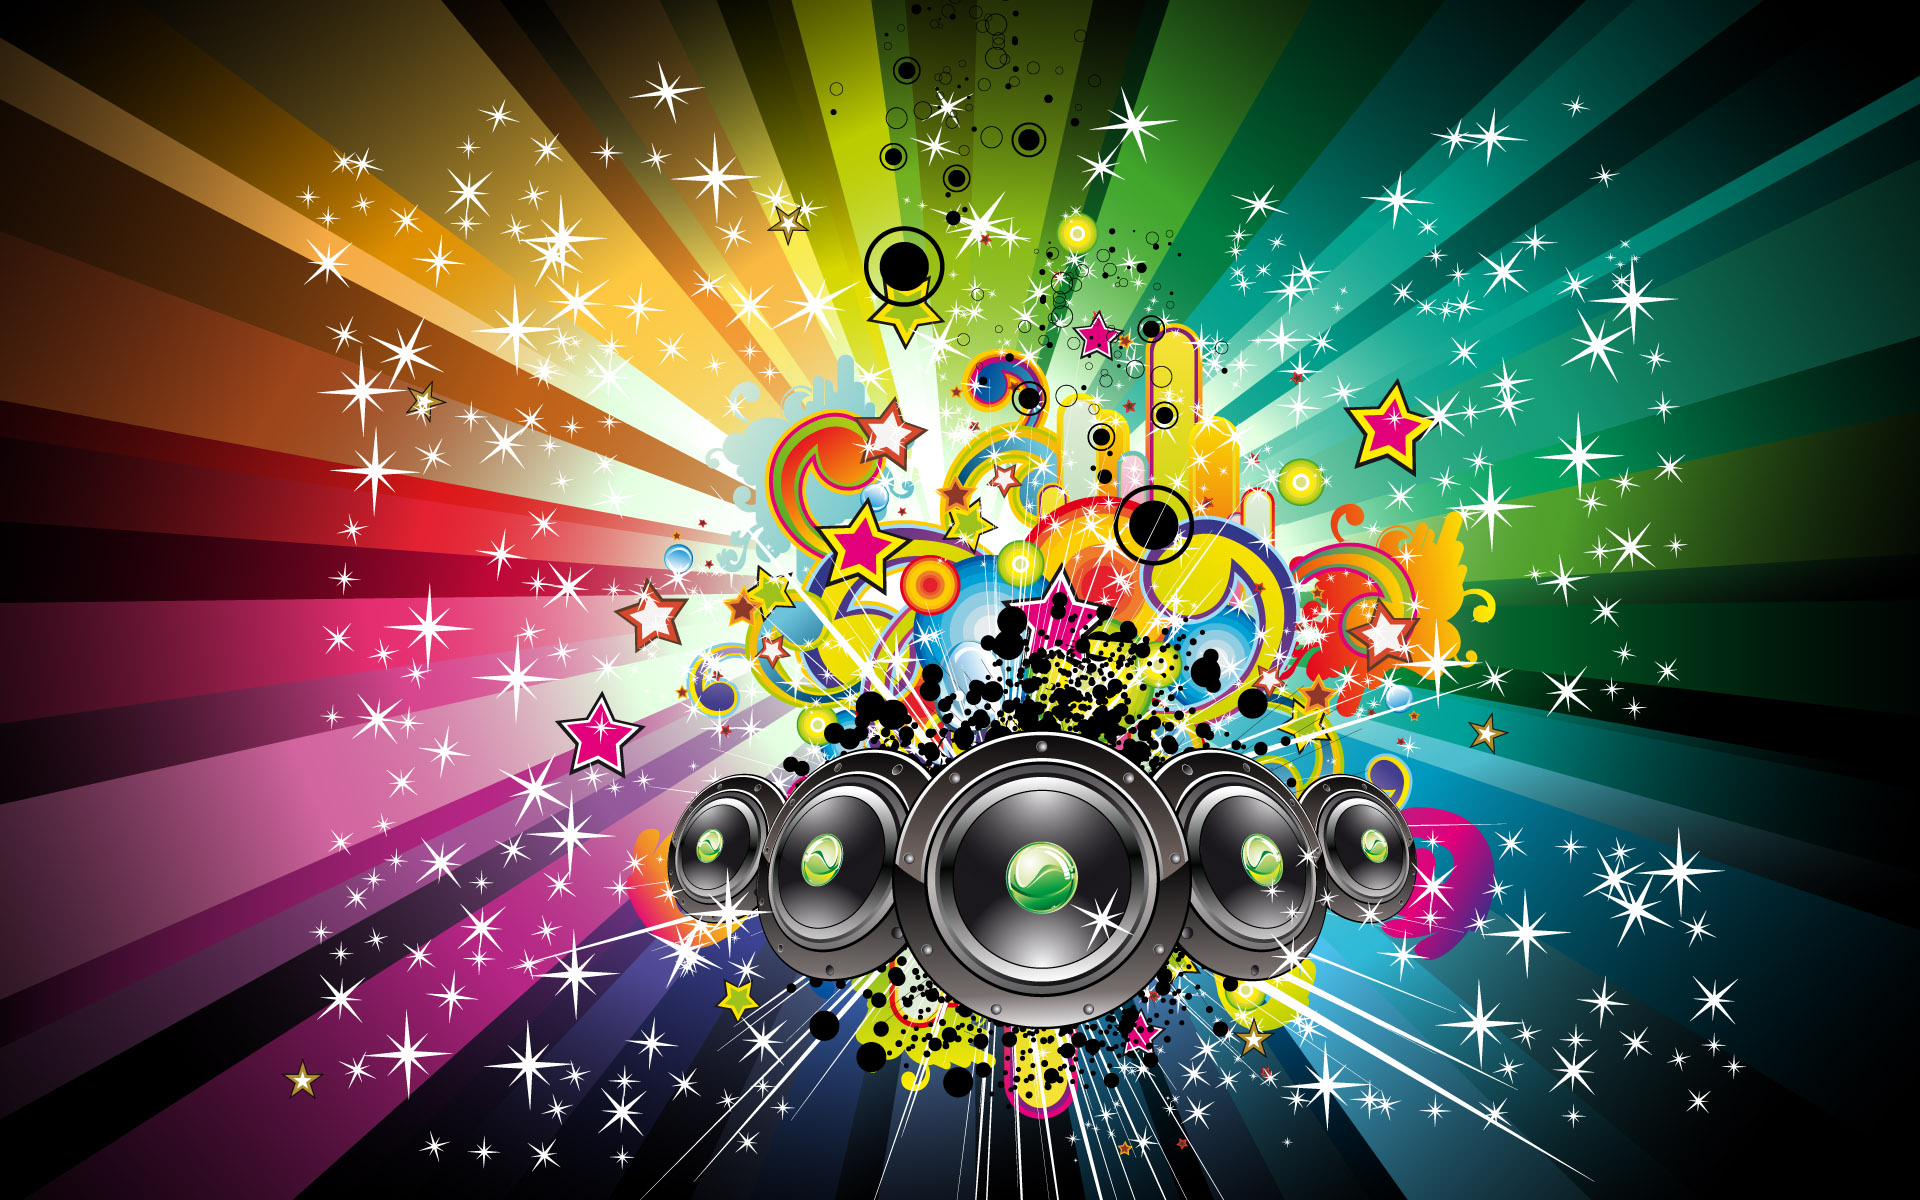 Neon clipart music note Wallpapers com 1920x1200 Music Single